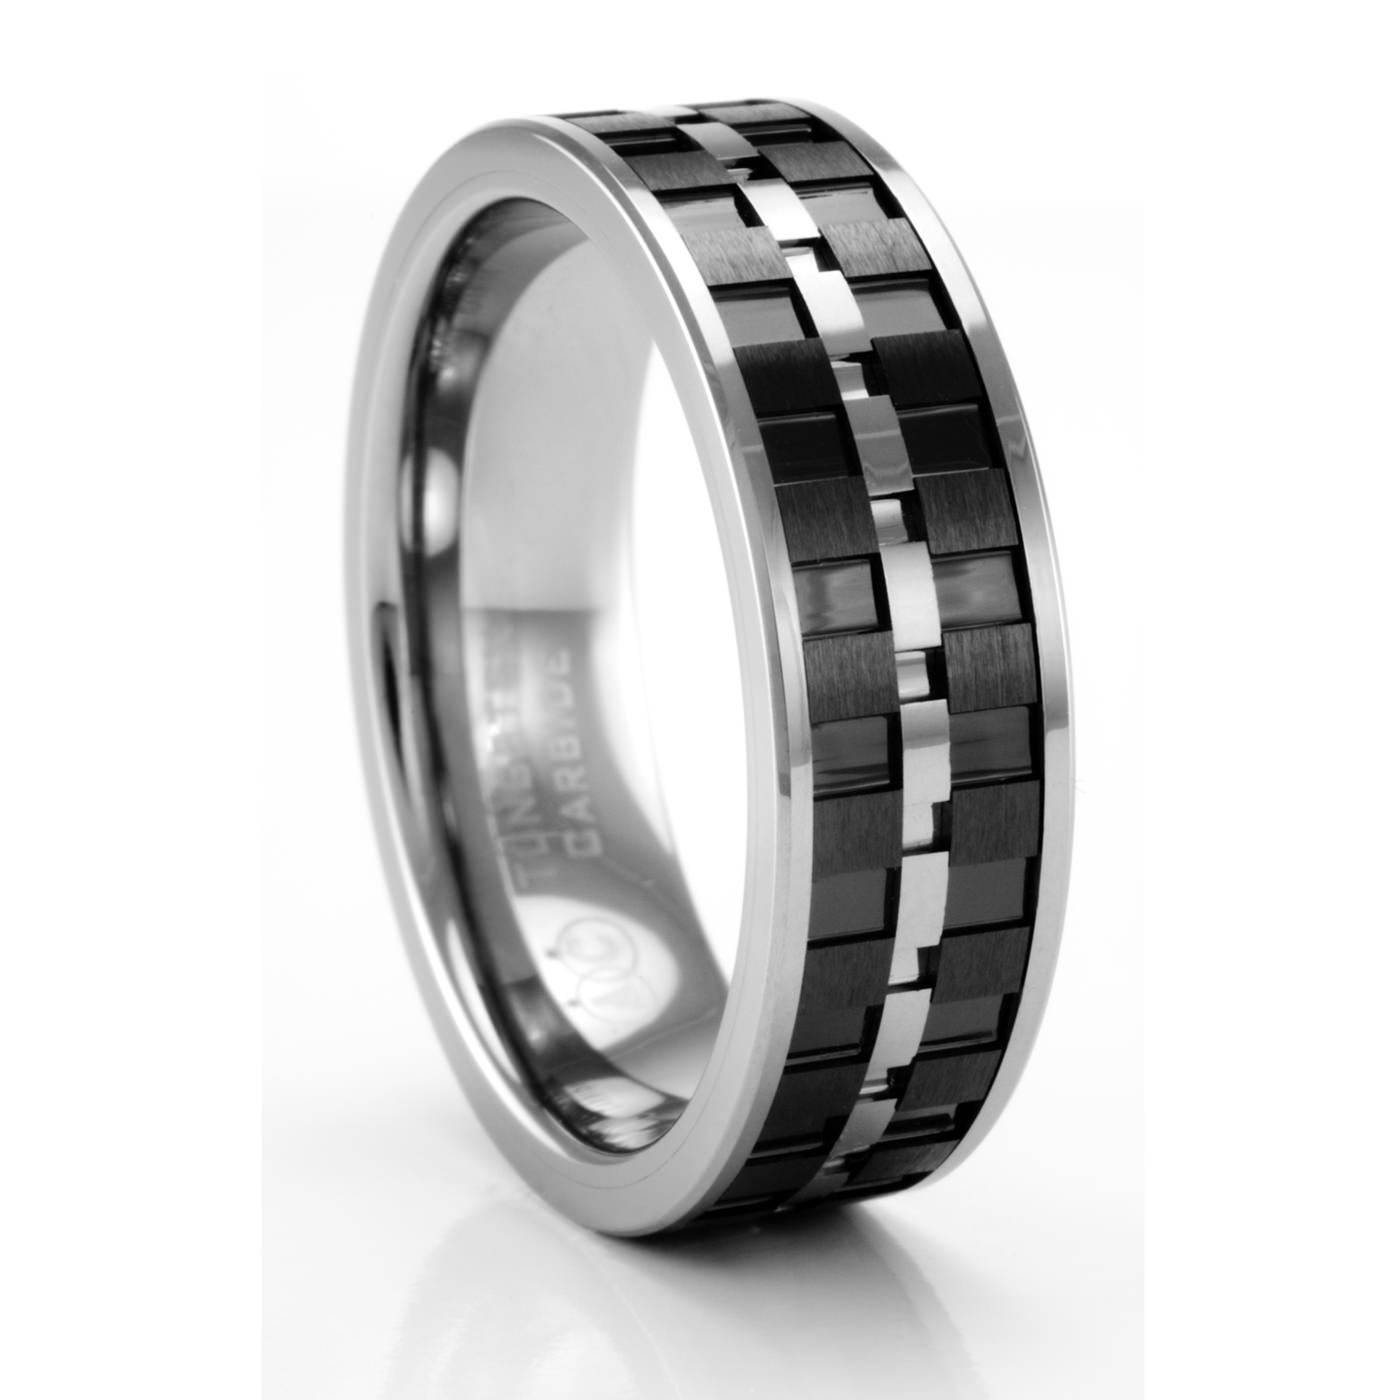 in and red of carbon ring fiber rings s beautiful ceramic engagement wedding diamond mens men inlay inspirational black bands